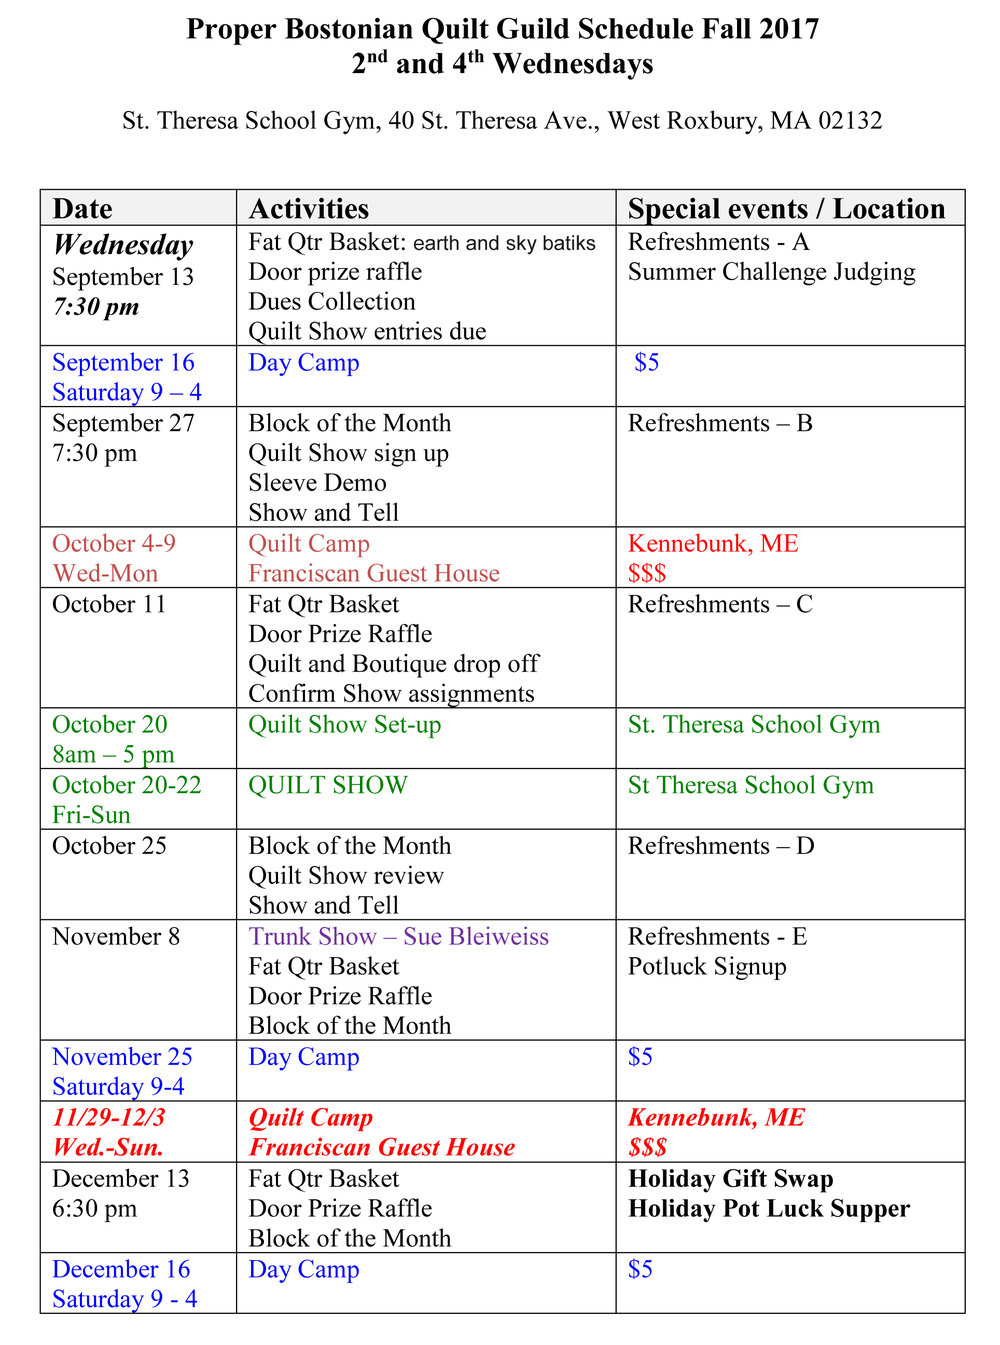 2017-PBQ-Fall-schedule-updated-FOR-WEB-090817.jpg